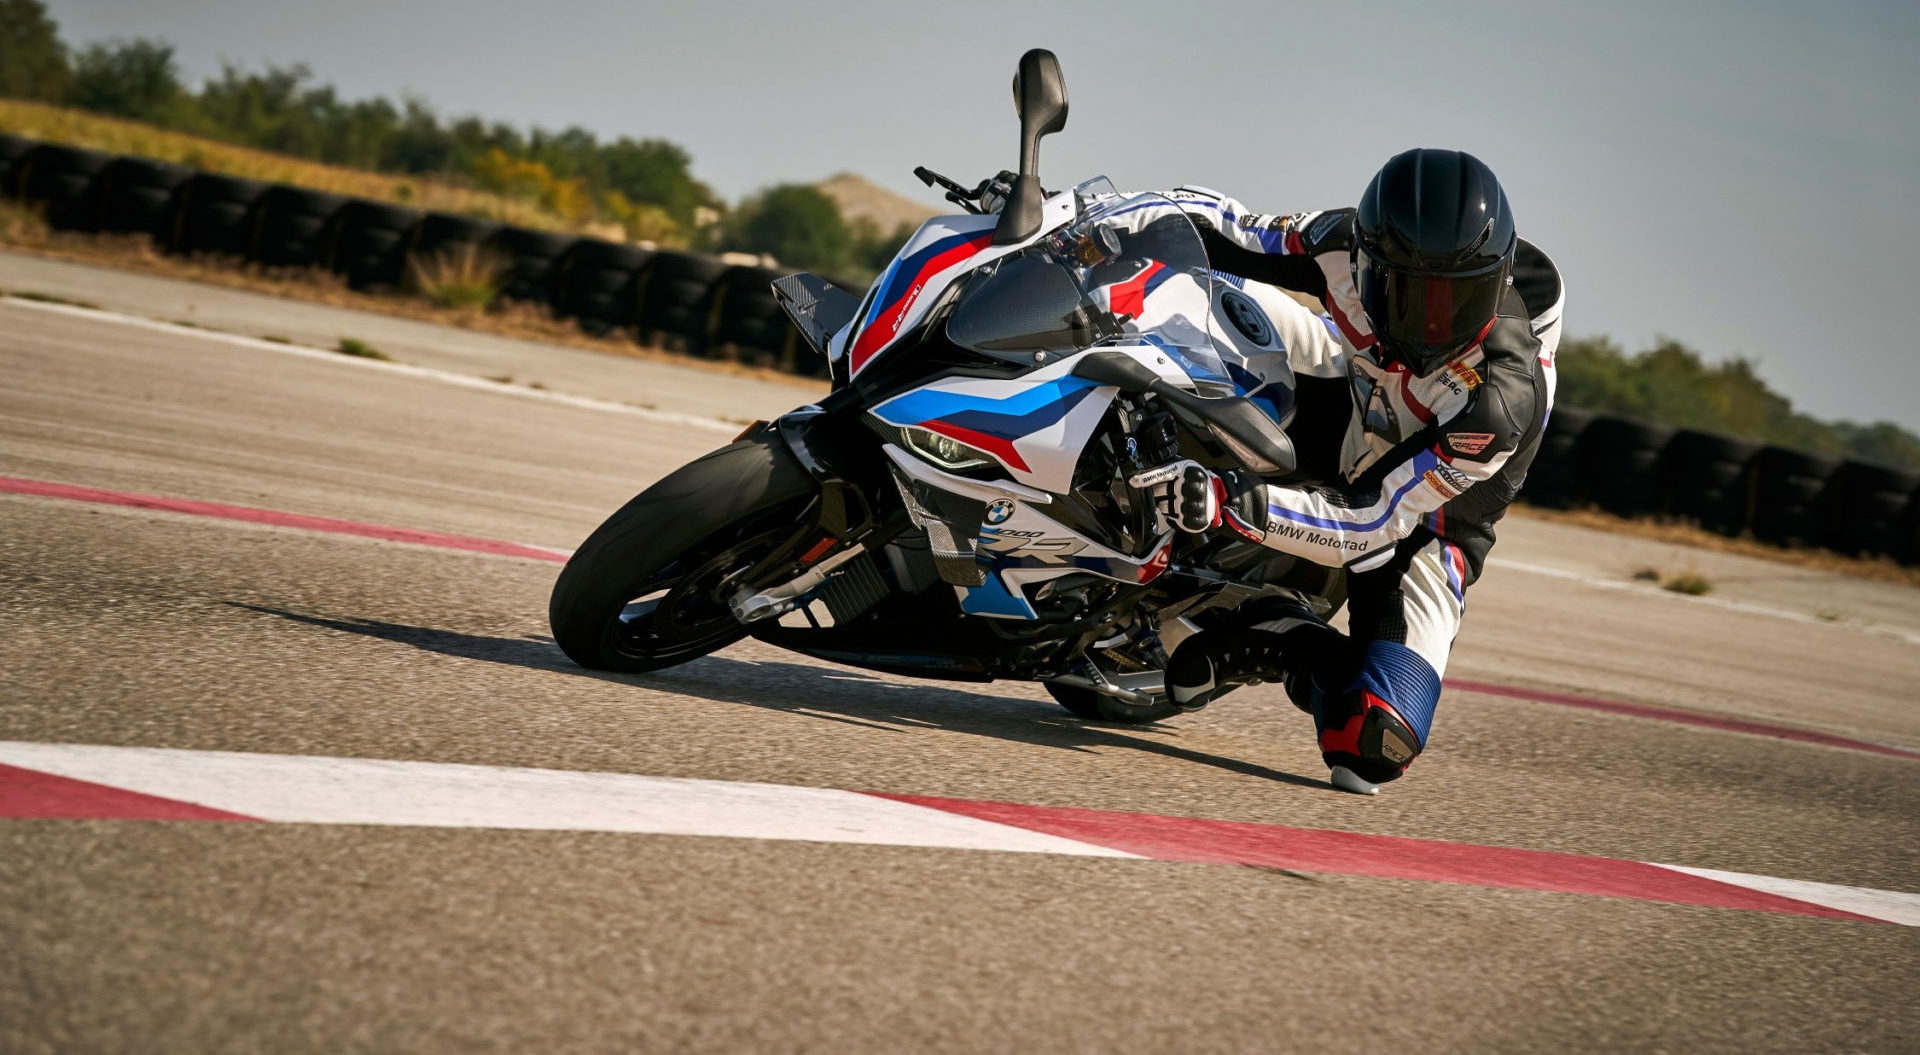 A BMW M 1000 RR at speed on a racetrack. Photo courtesy BMW Motorrad USA.